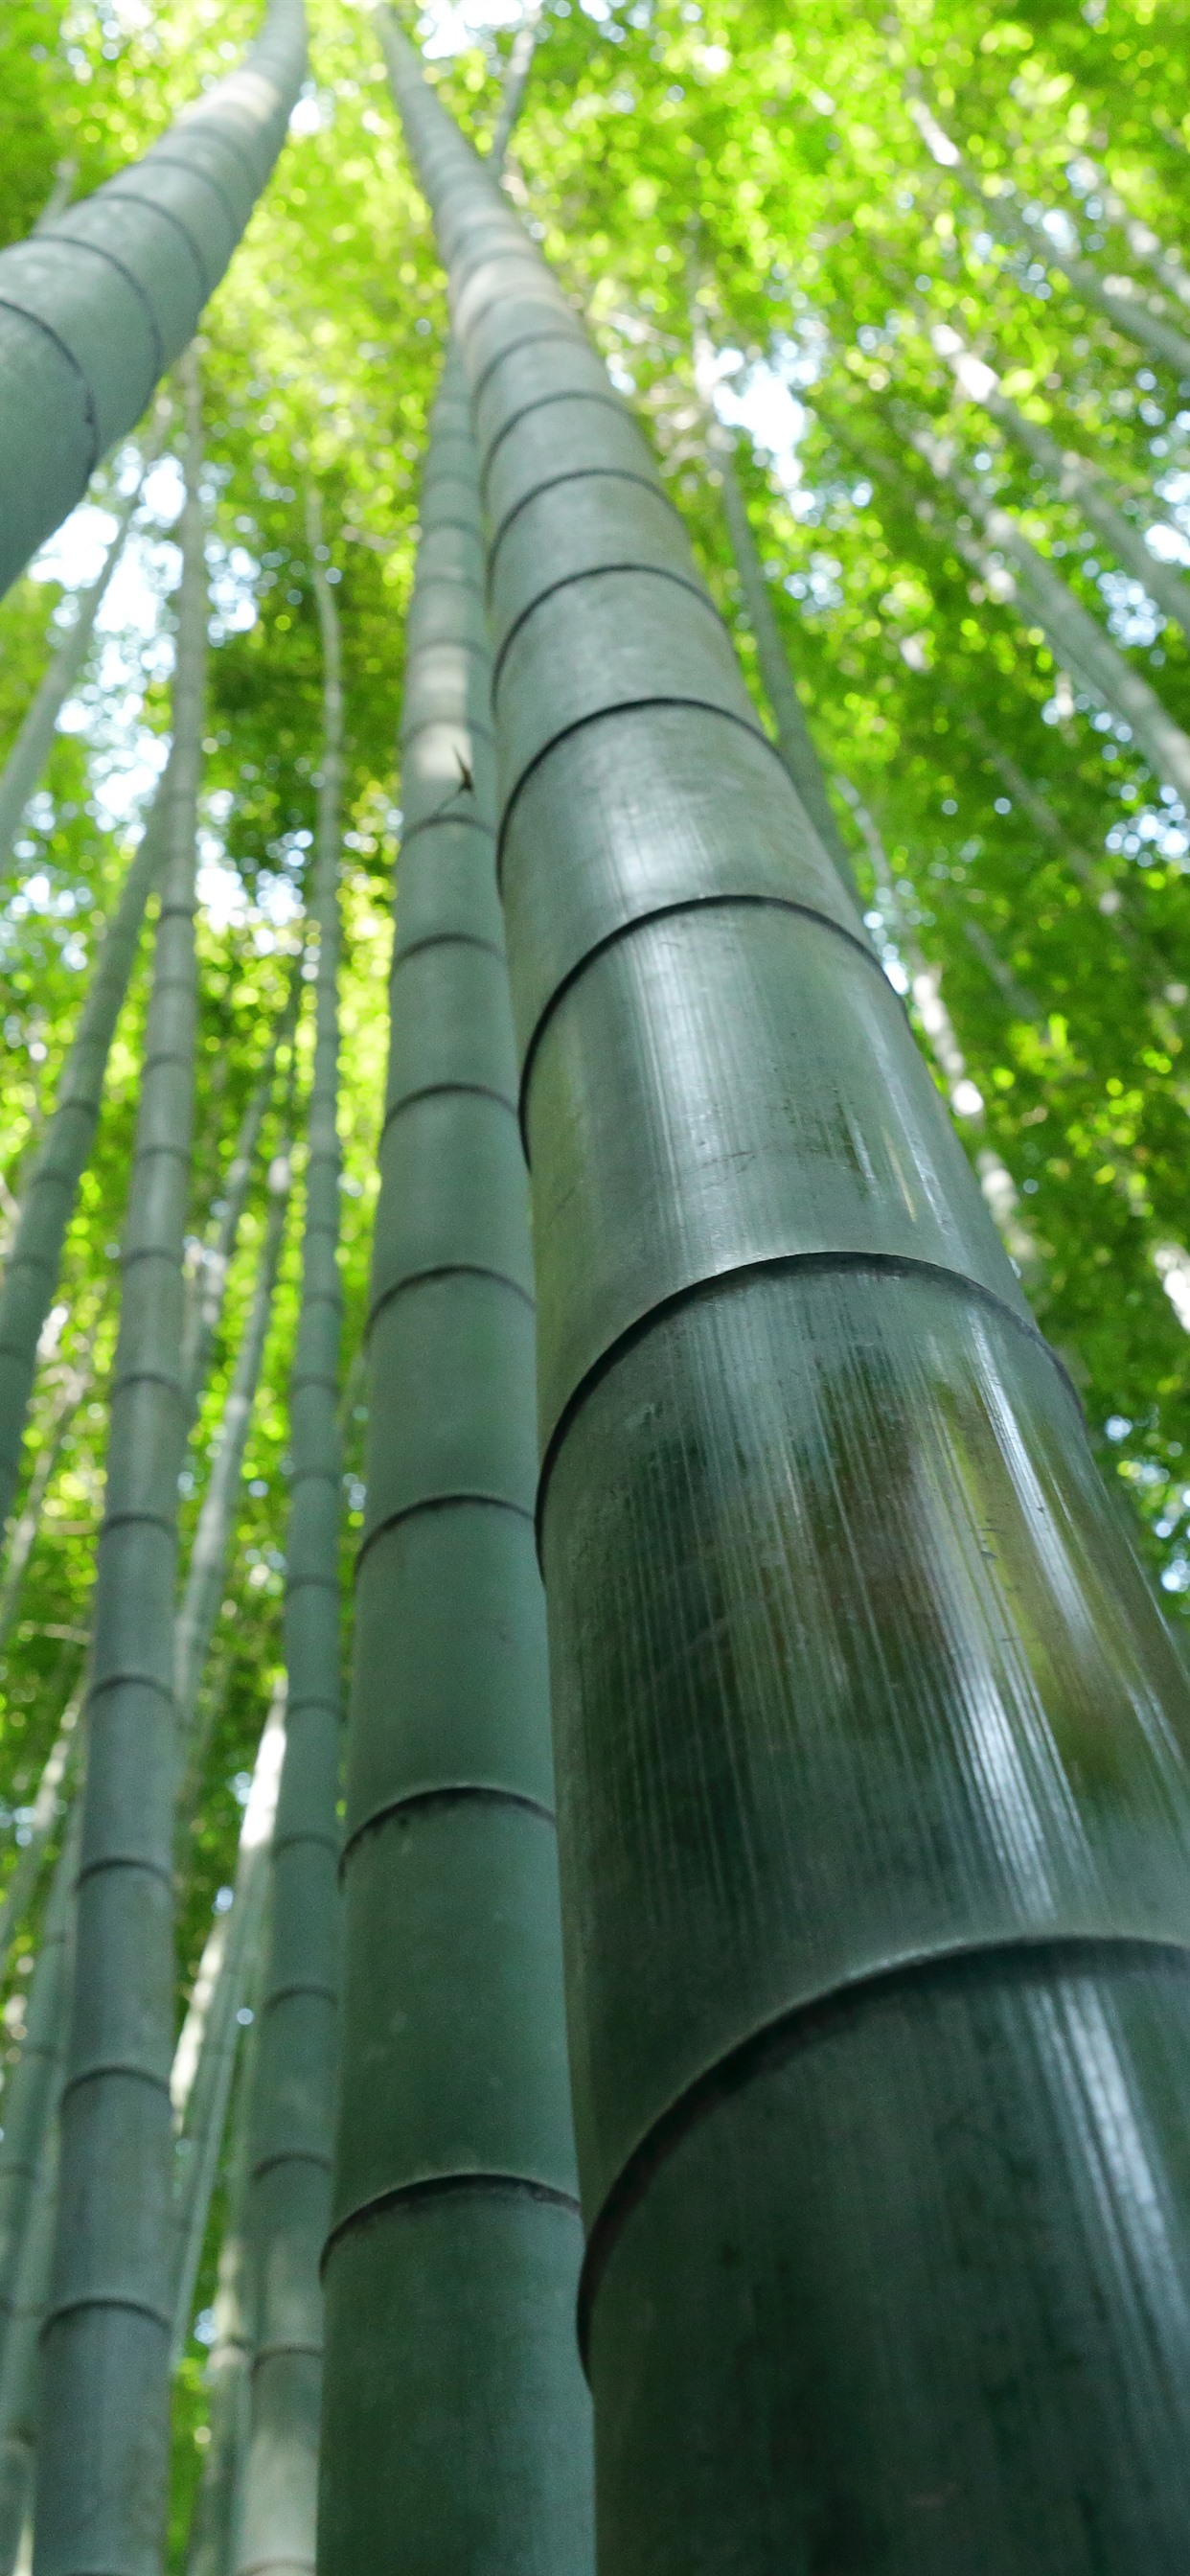 Bamboo Forest Green Summer 1242x2688 Iphone 11 Pro Xs Max Wallpaper Background Picture Image